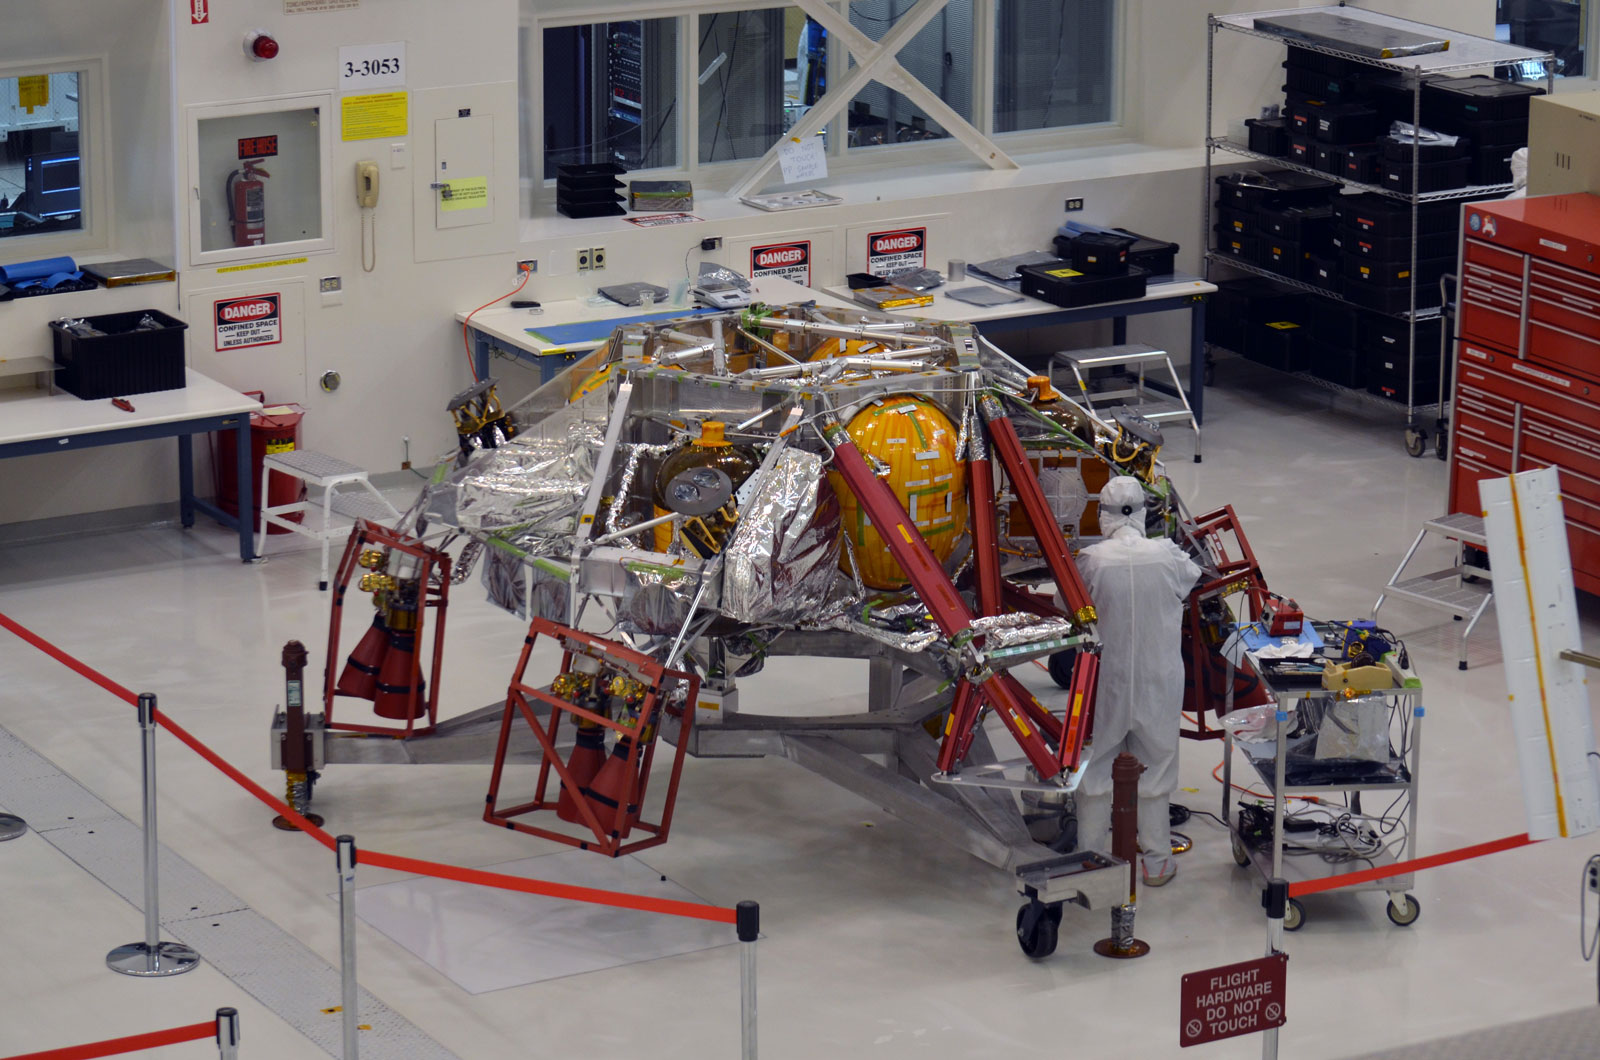 A technician working on the descent stage for NASA's Mars 2020 mission inside JPL's Spacecraft Assembly Facility.